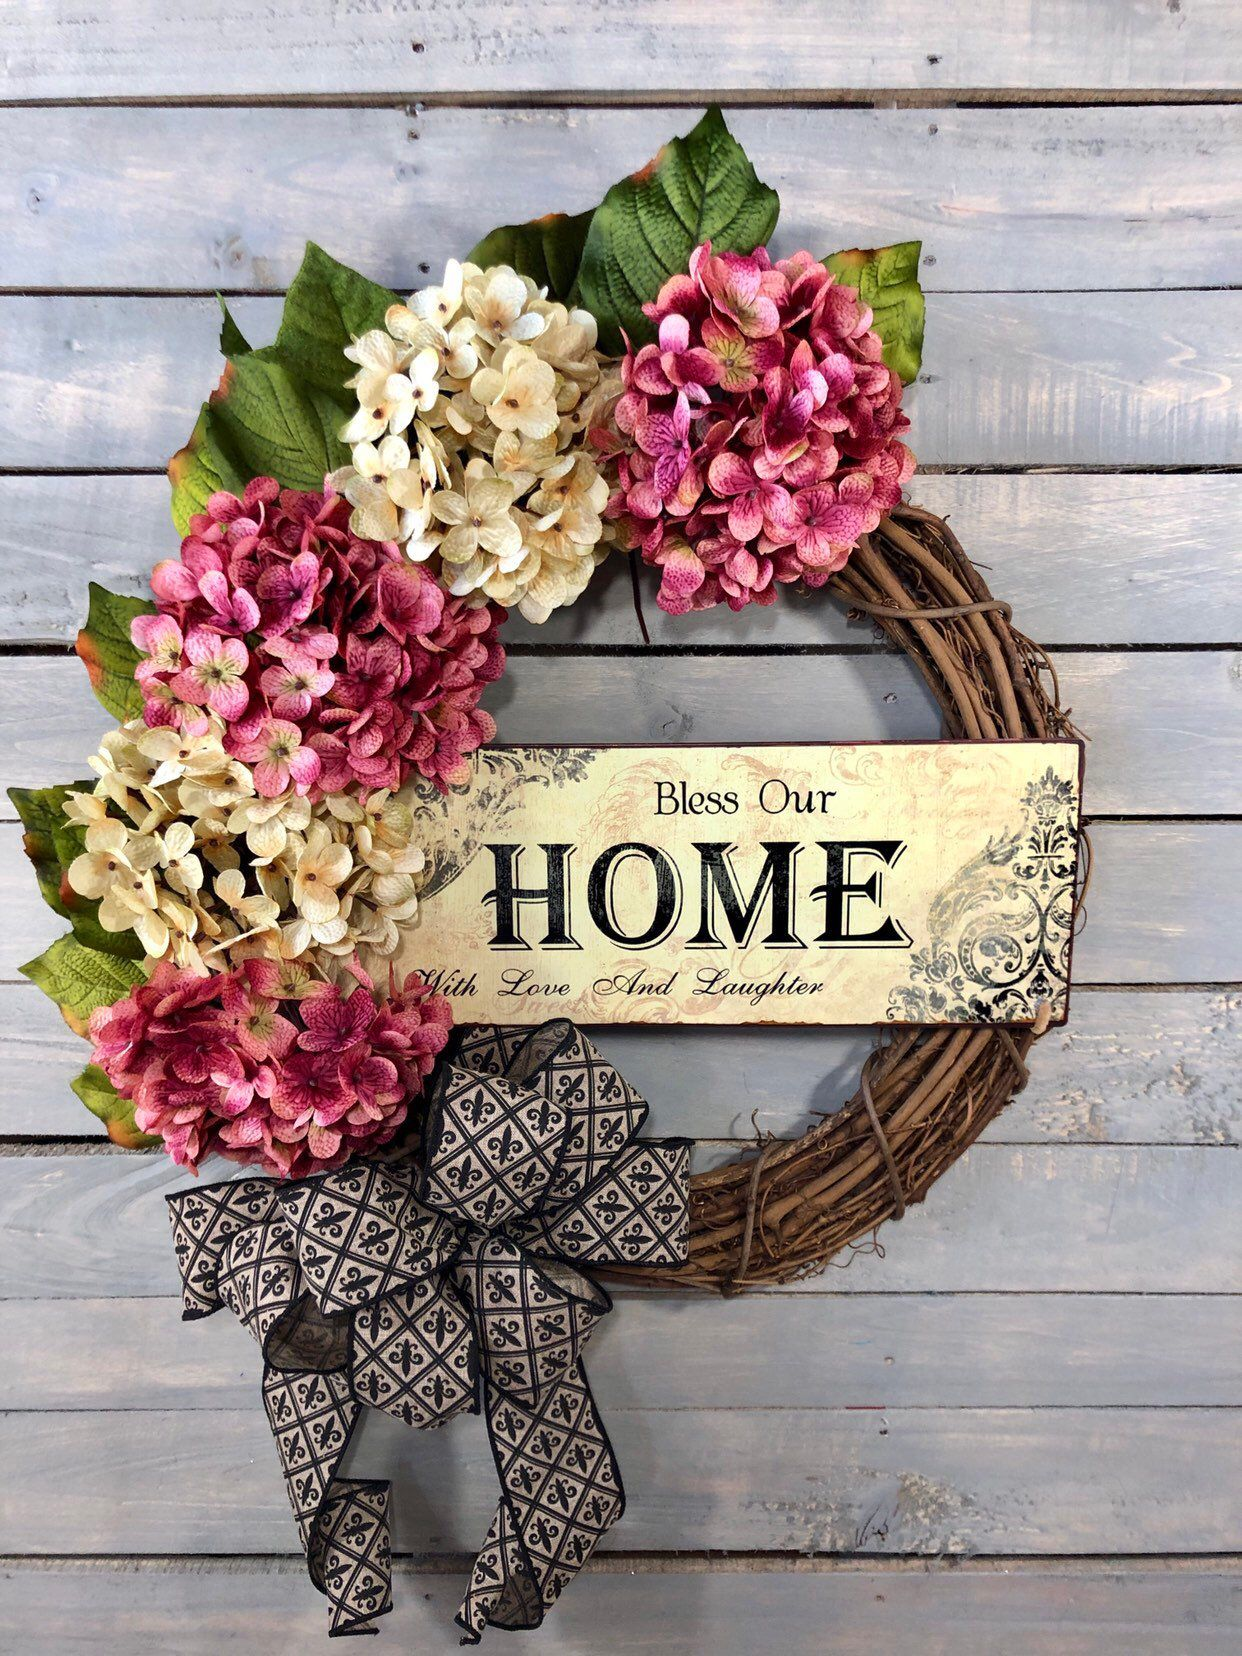 Summer Wreaths for Front Door Floral Wreath Bless This Home Decor Grapevine Wreath Hydrangea Wreath